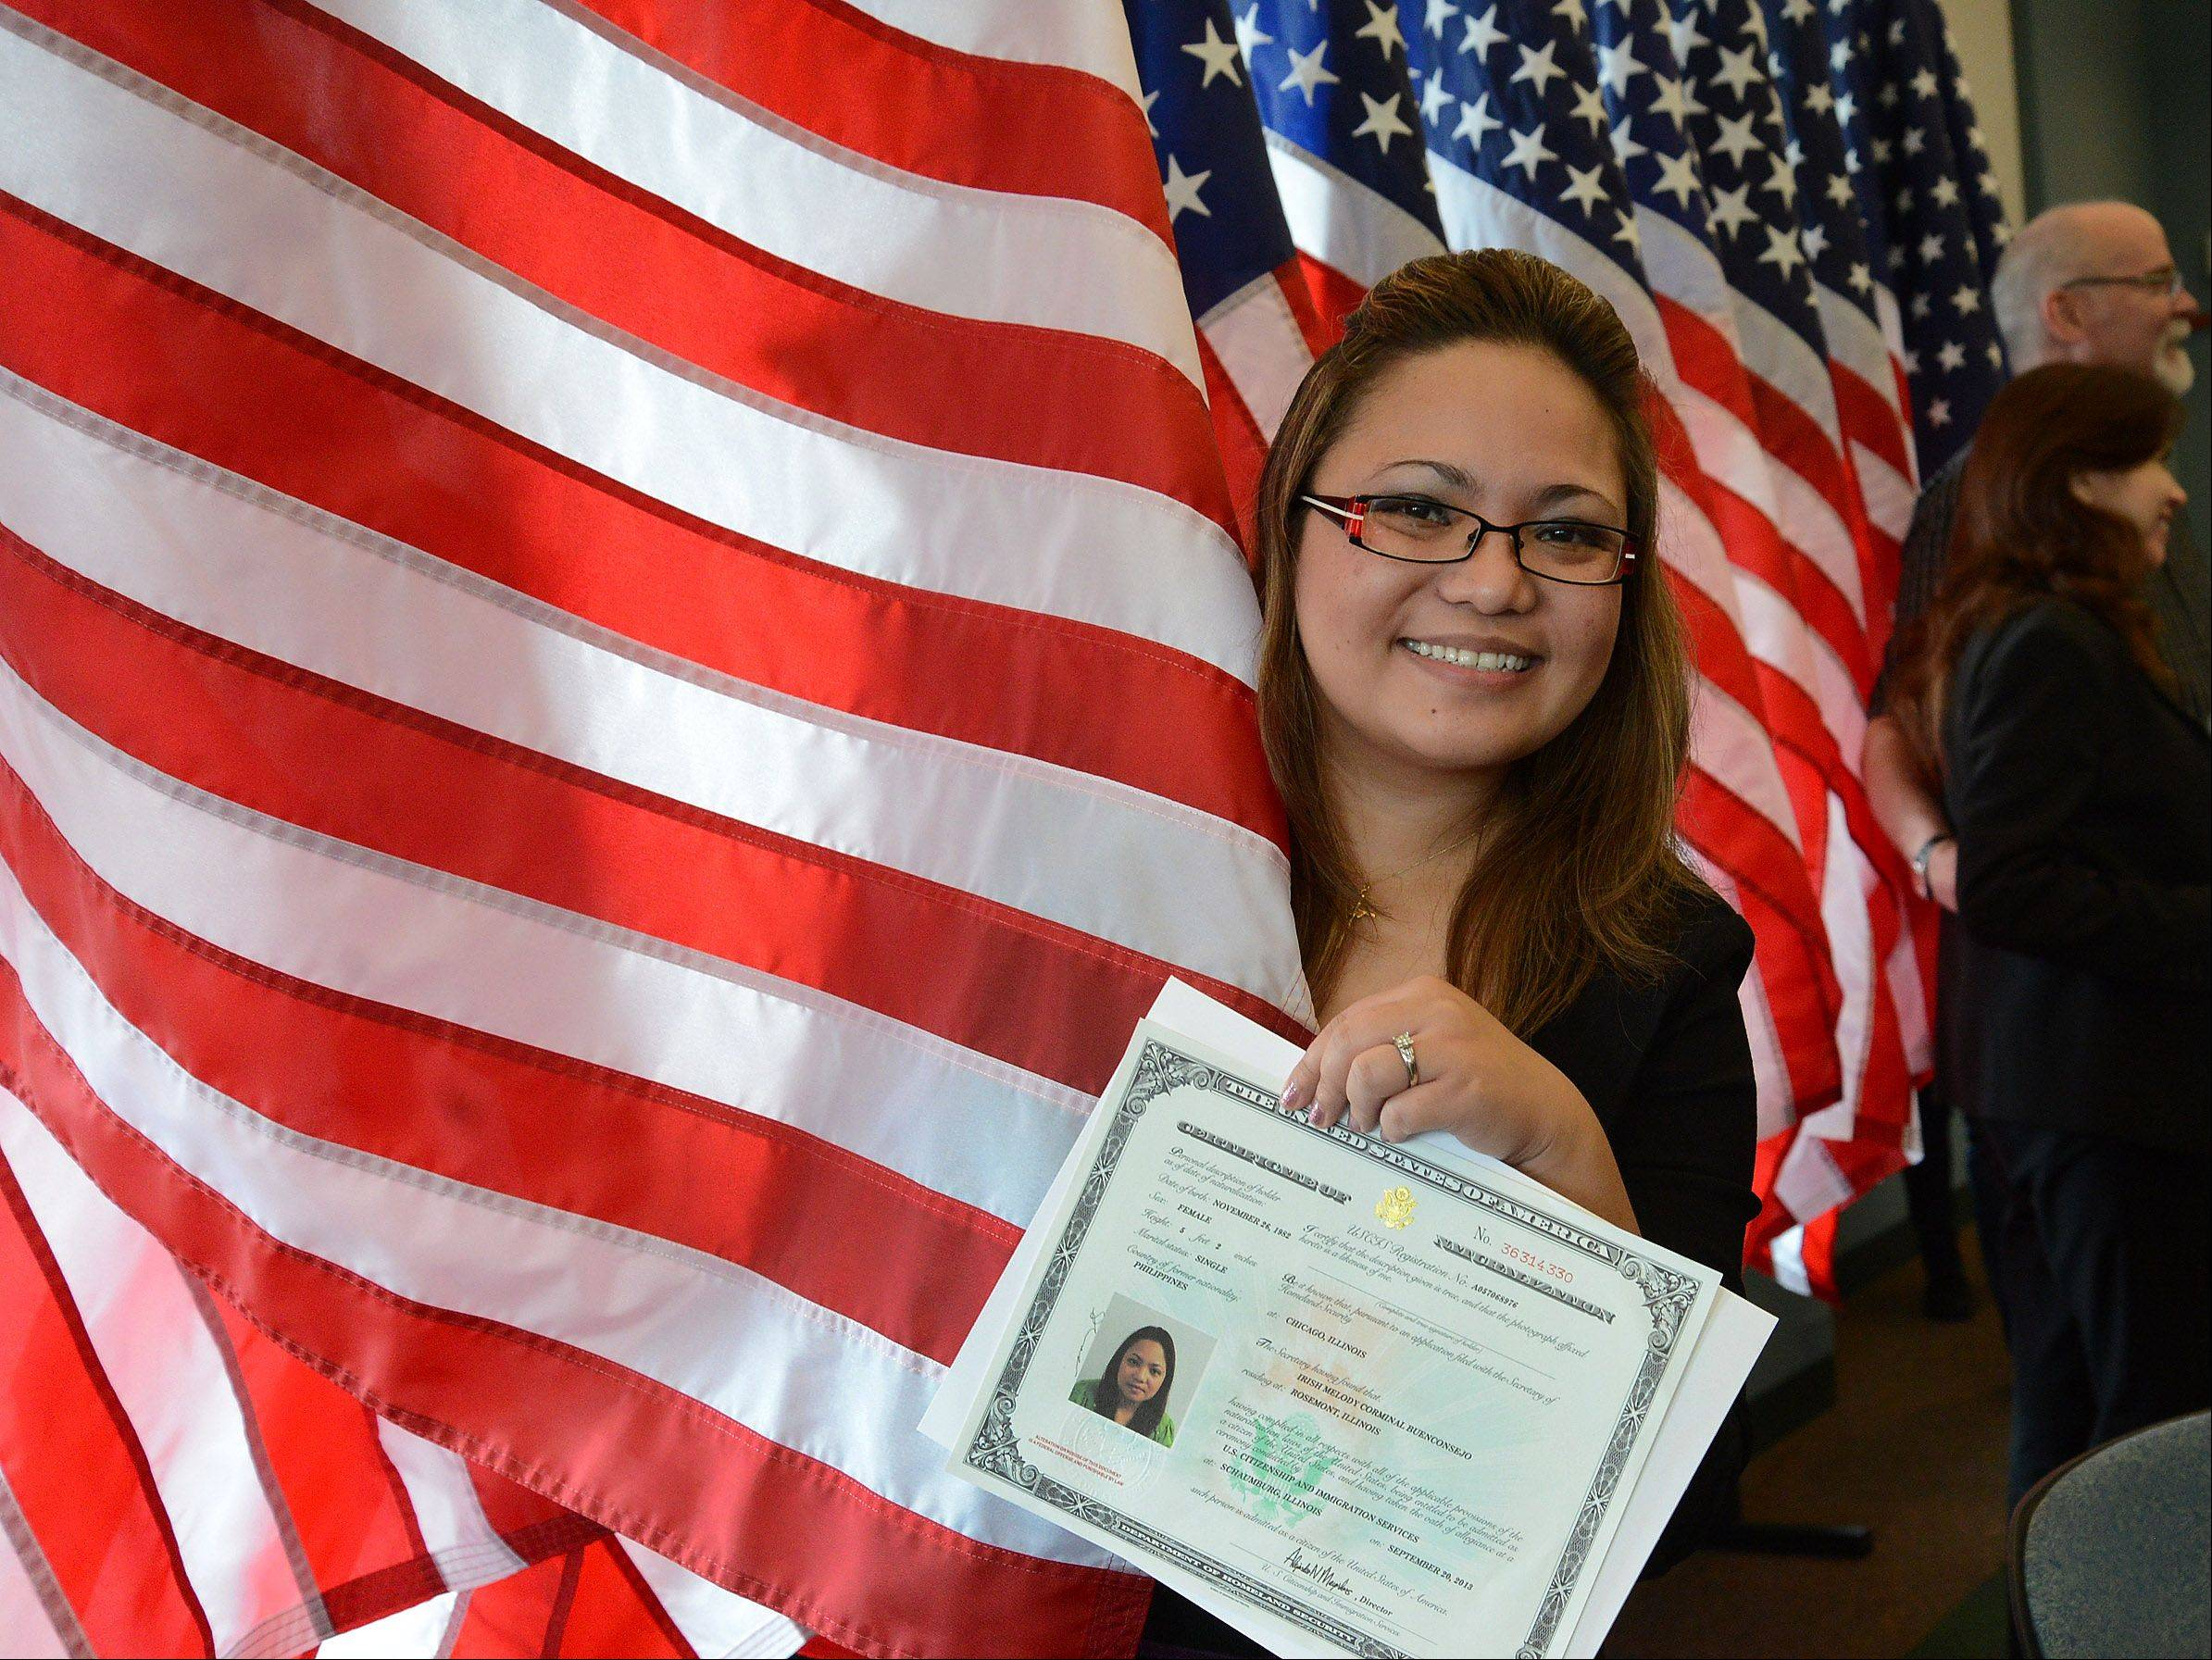 Irish Melody Buenconsejo of Rosemont wraps herself in the American flag after receiving her certificate of citizenship during a naturalization ceremony Friday in Schaumburg.